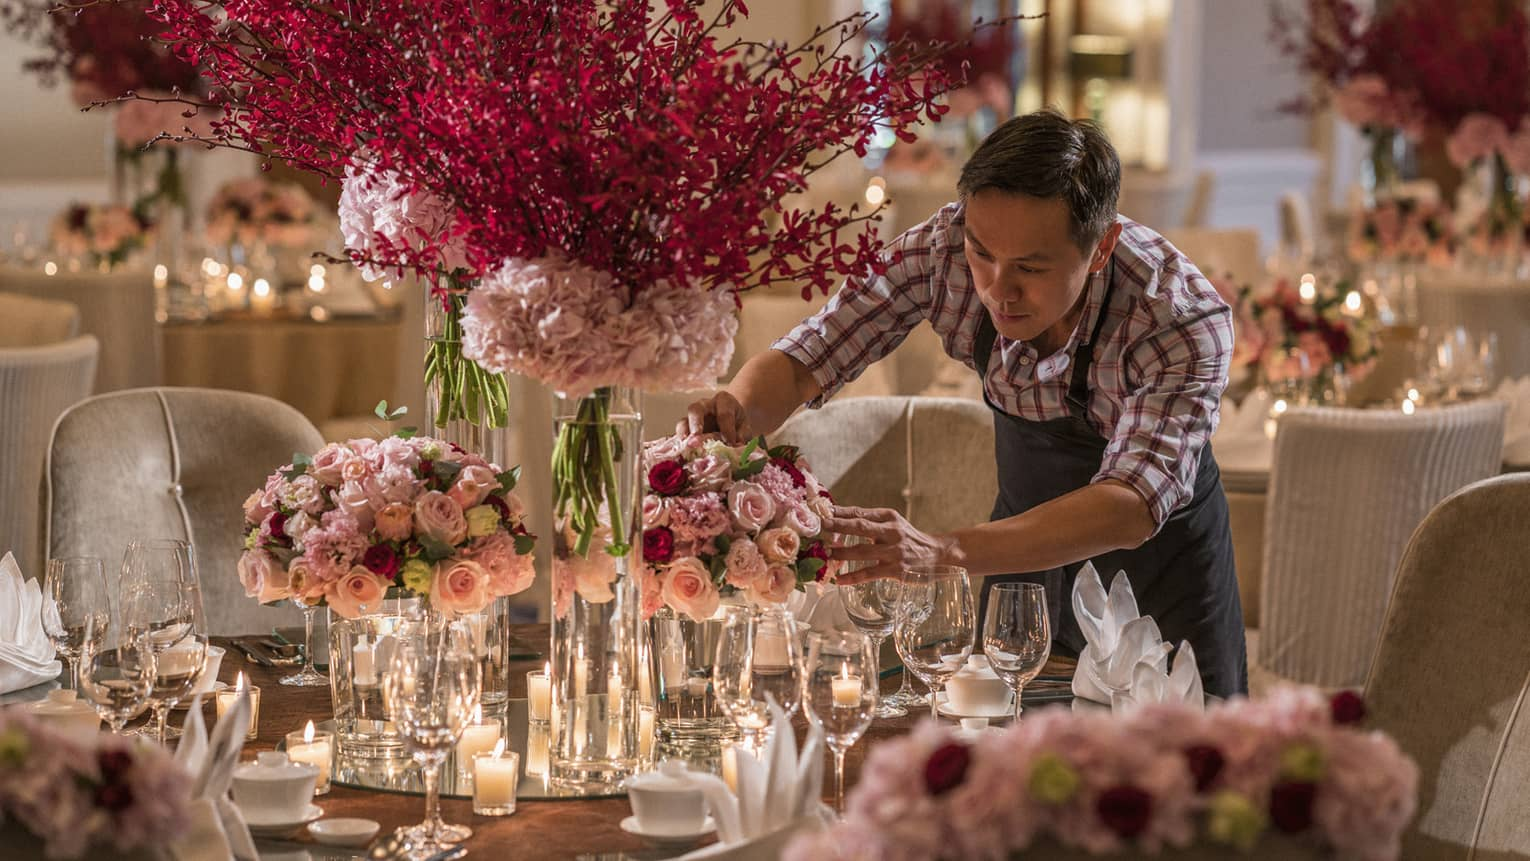 Hotel staff arranges roses in vase on large candle-lit banquet table